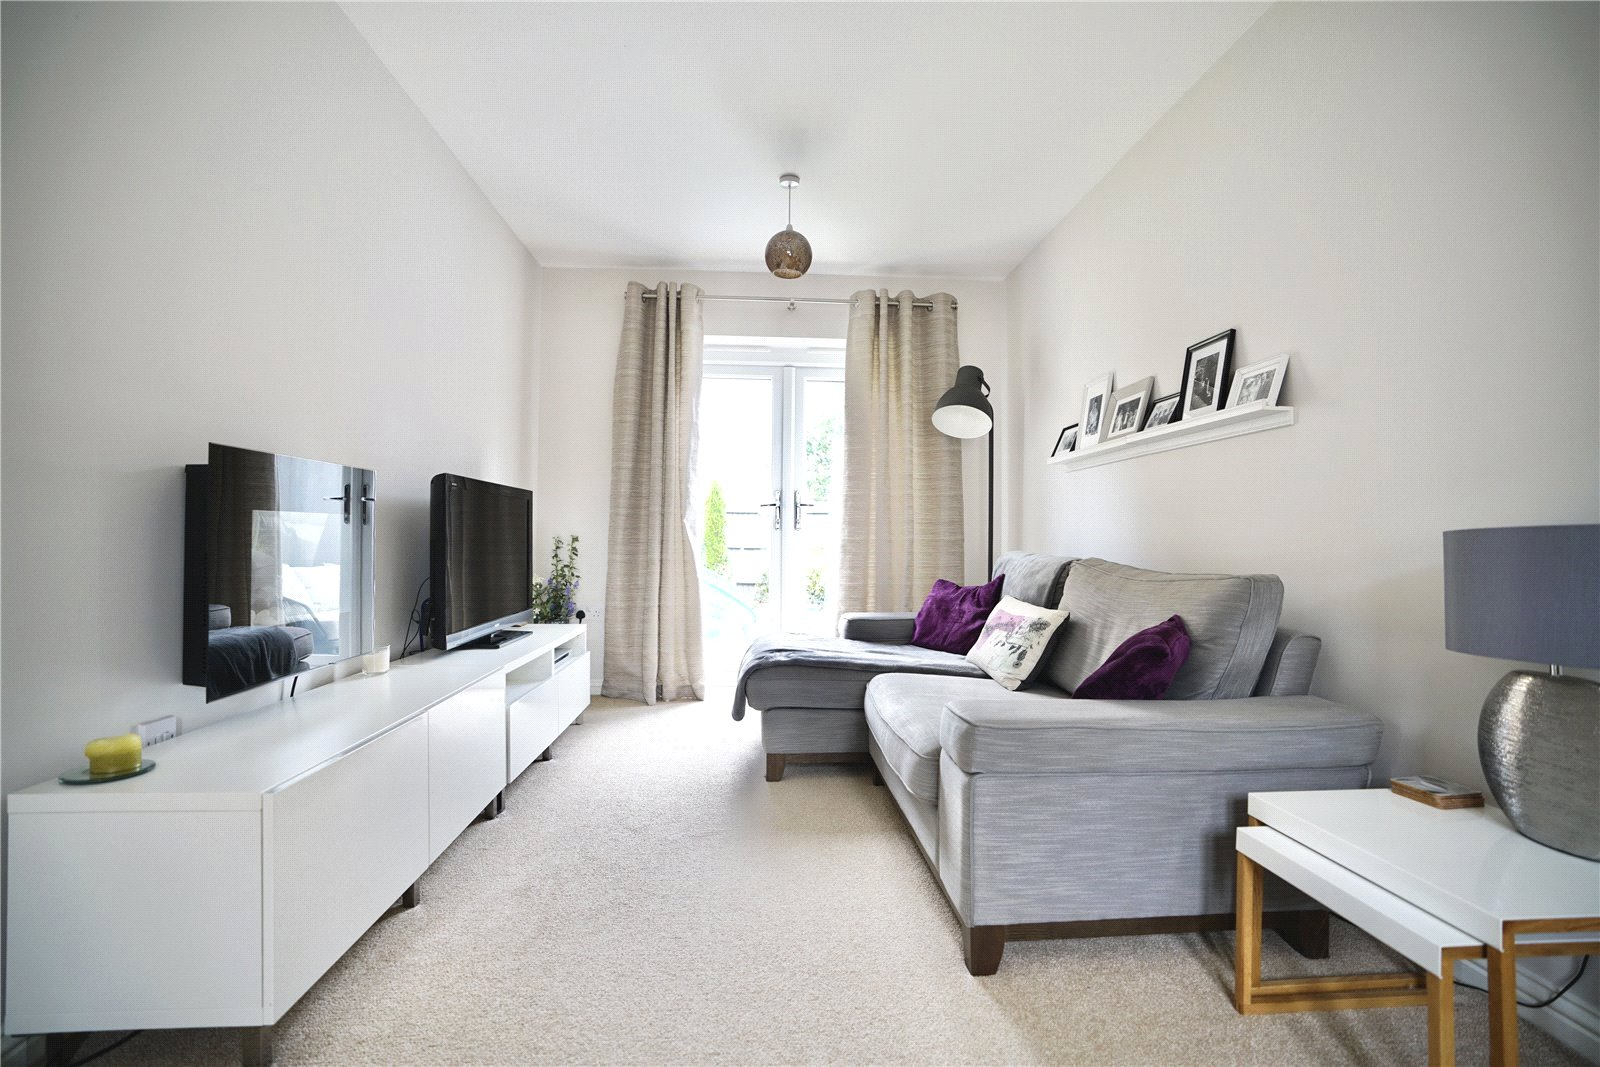 3 bed house for sale in St. Ives, PE27 5DL  - Property Image 3